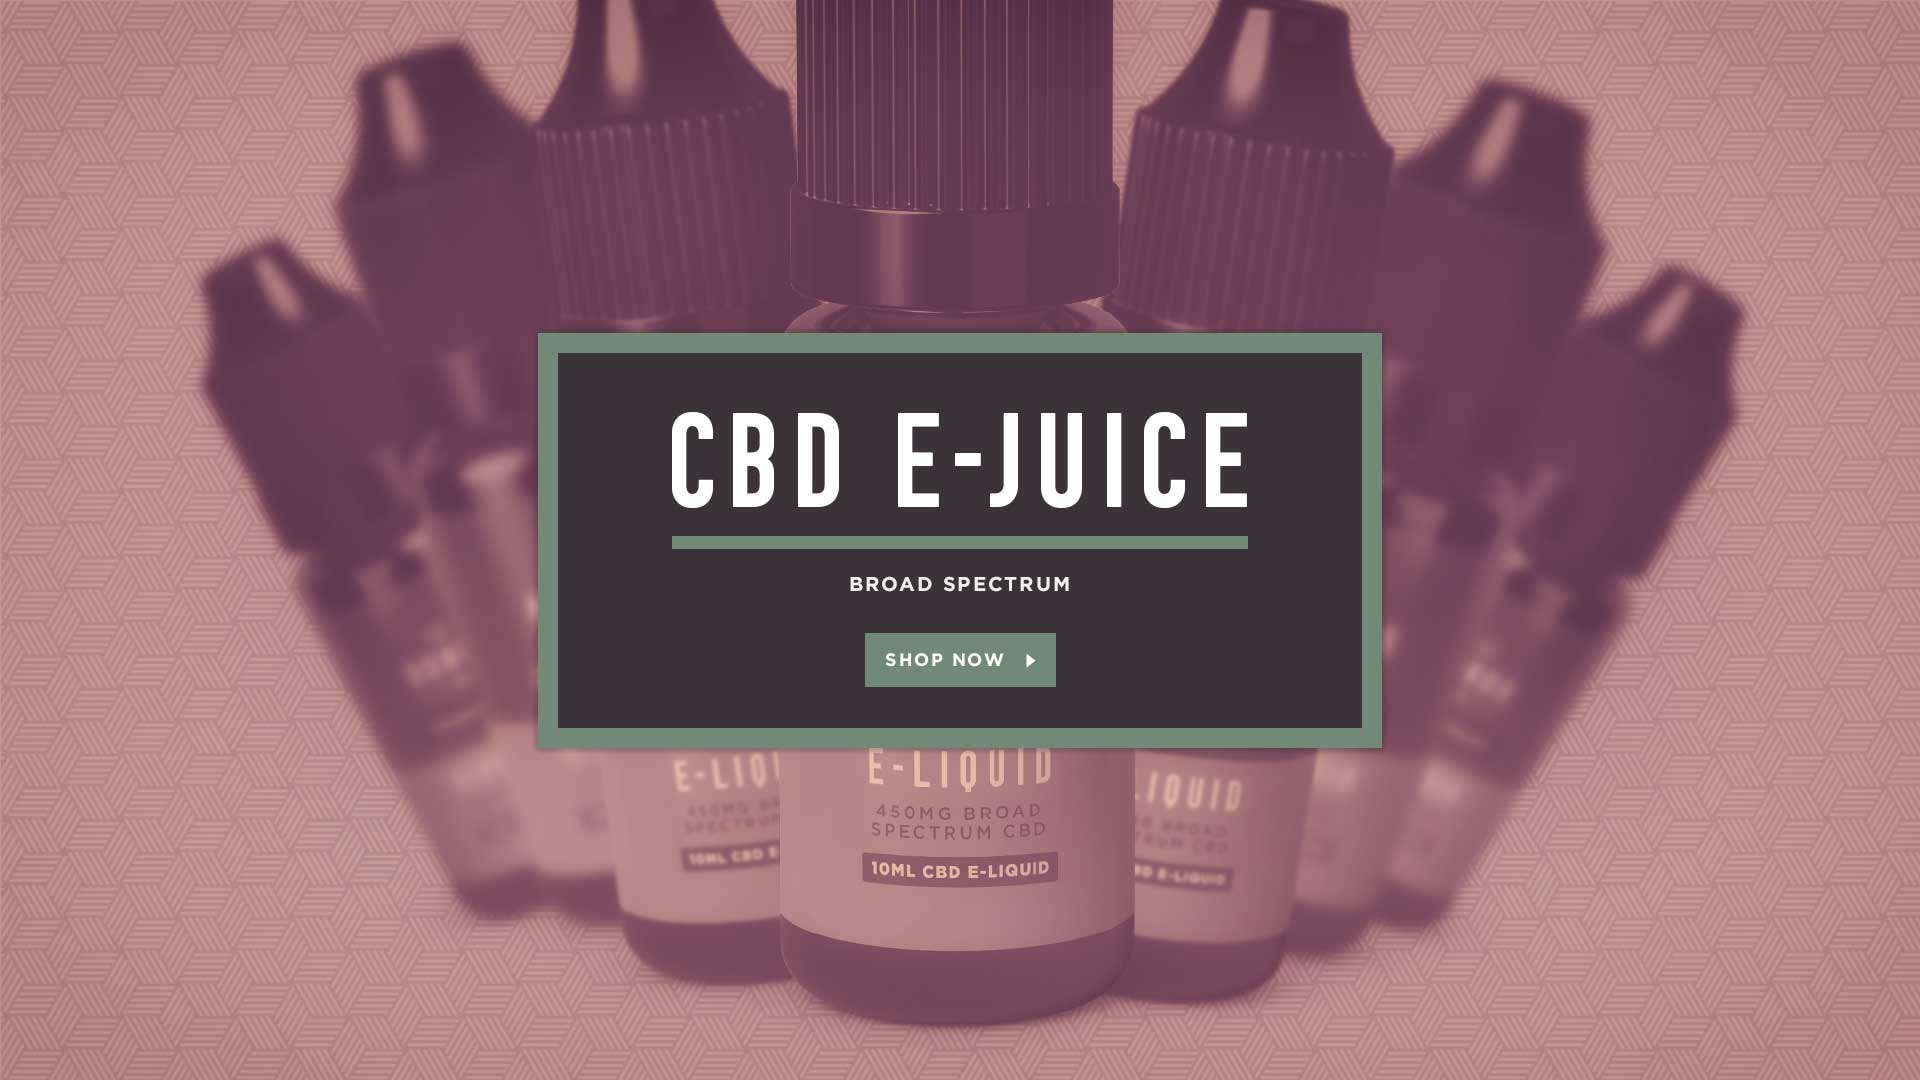 Shop for CBD E-Juice at mondocbd.co.uk